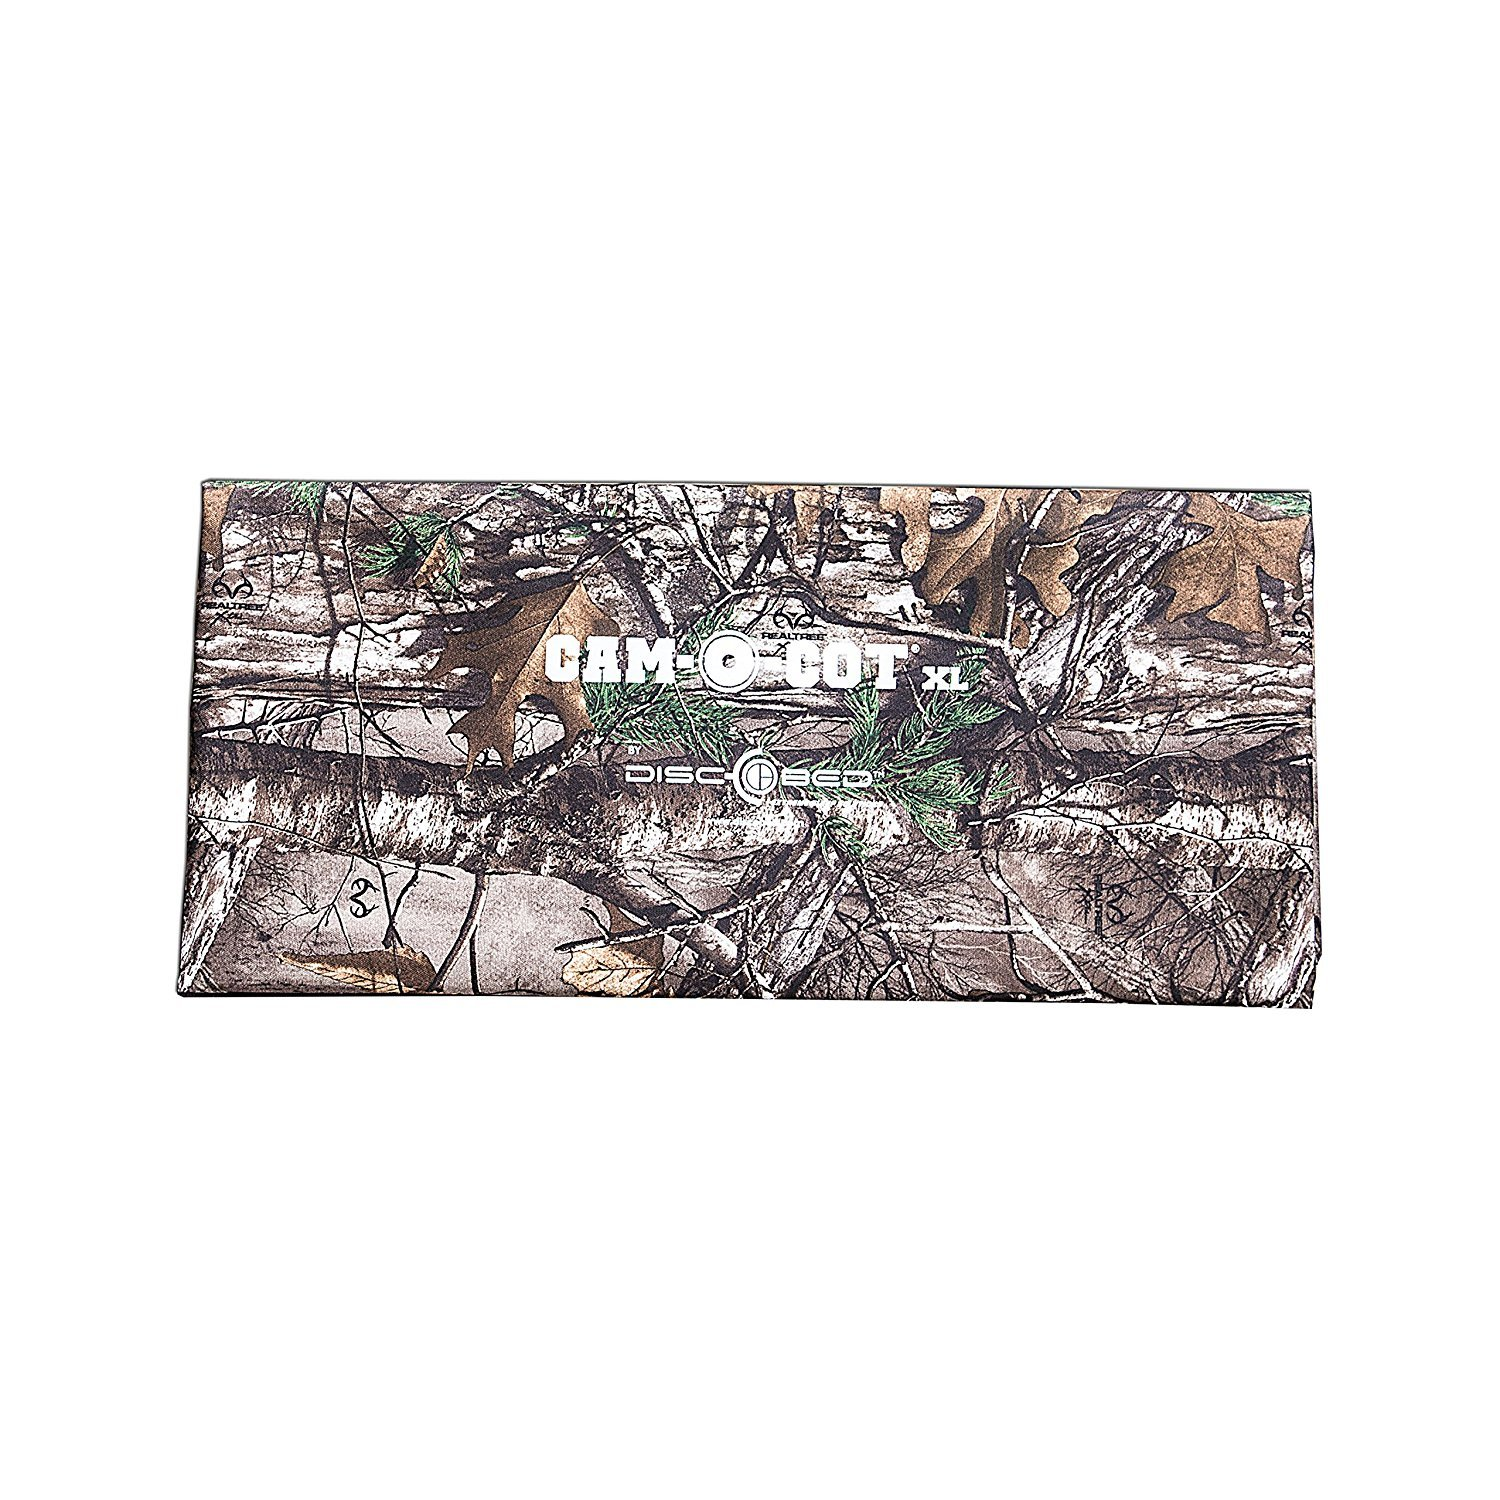 Replacement Mat with Realtree XTRA for Cam-O-Bunk X-Large [並行輸入品] B074DG694T